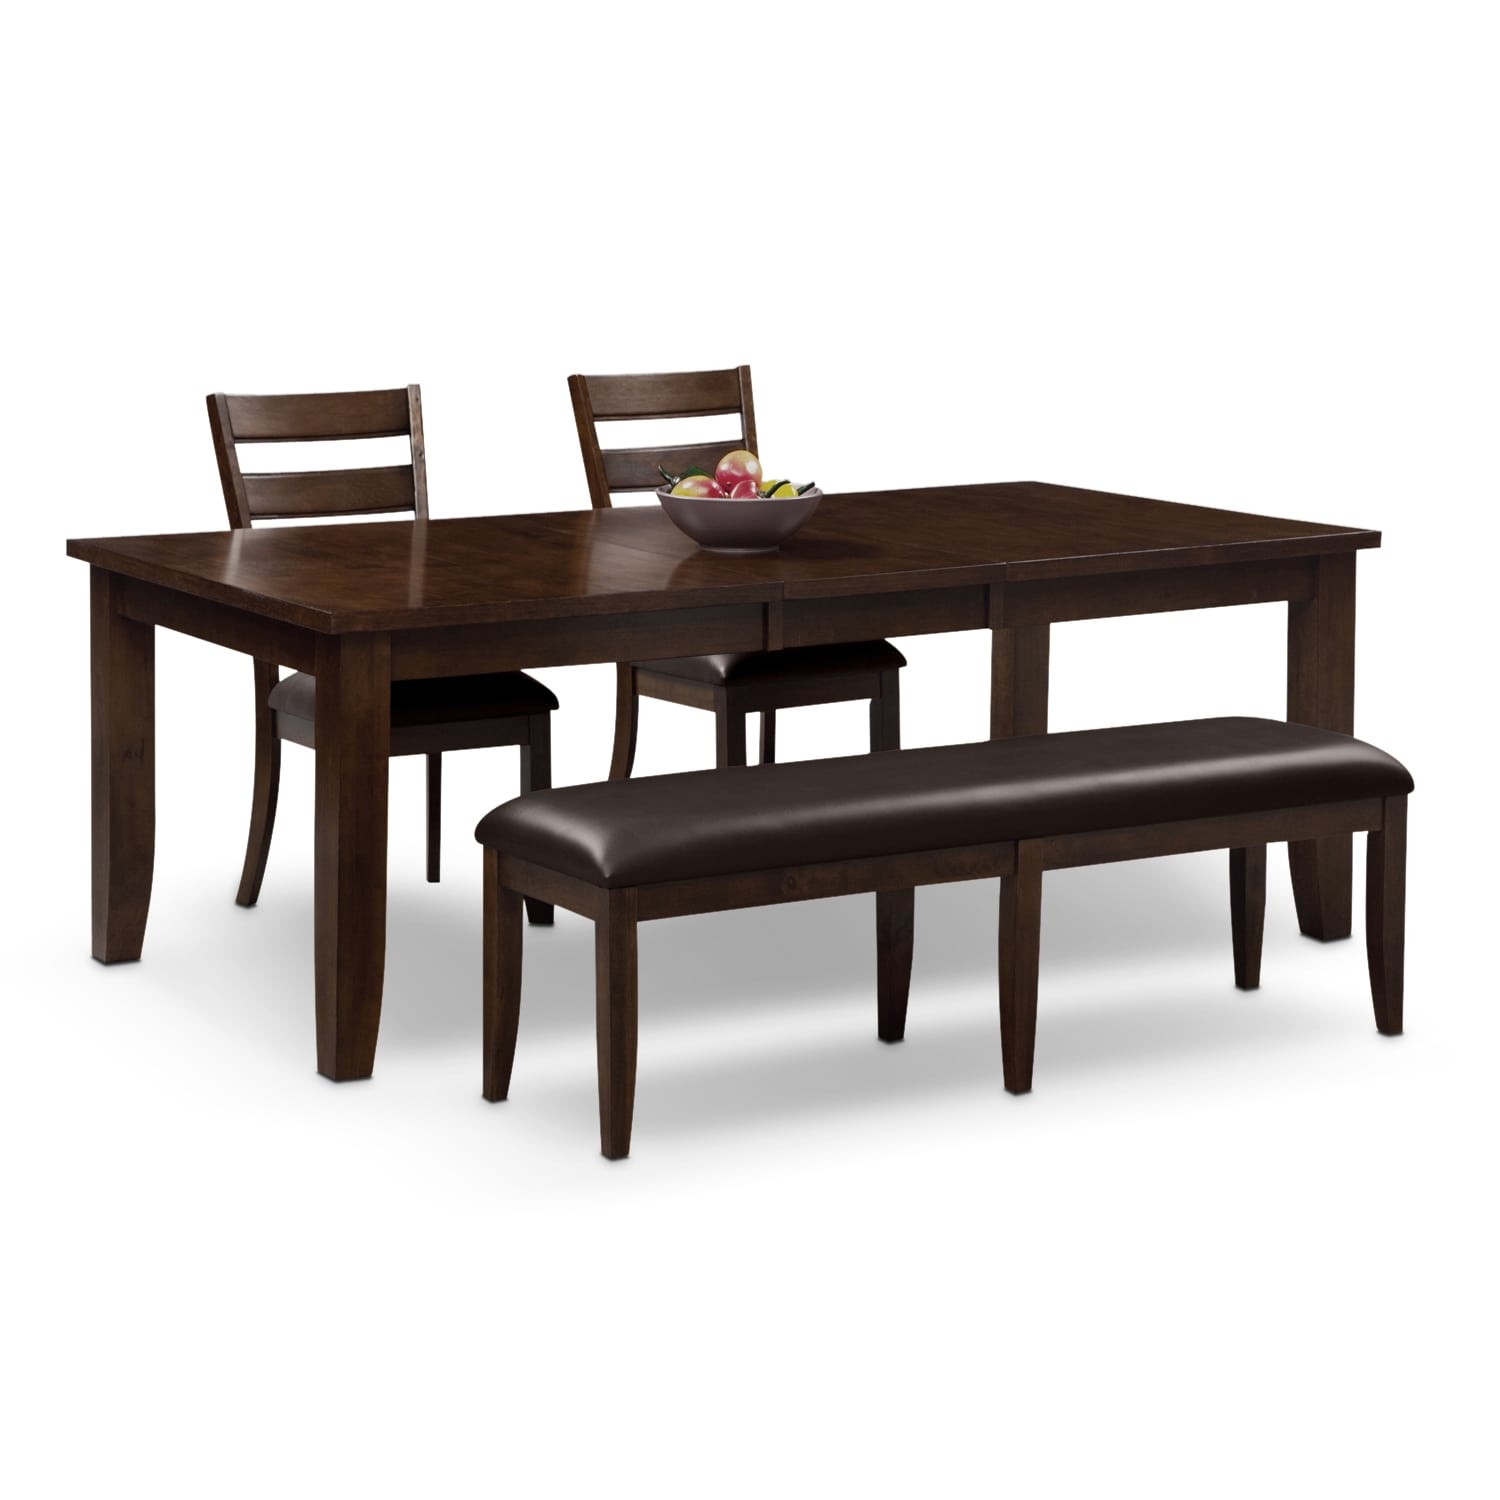 Dining Room Table For 2: Abaco Table, 2 Chairs And Bench - Brown